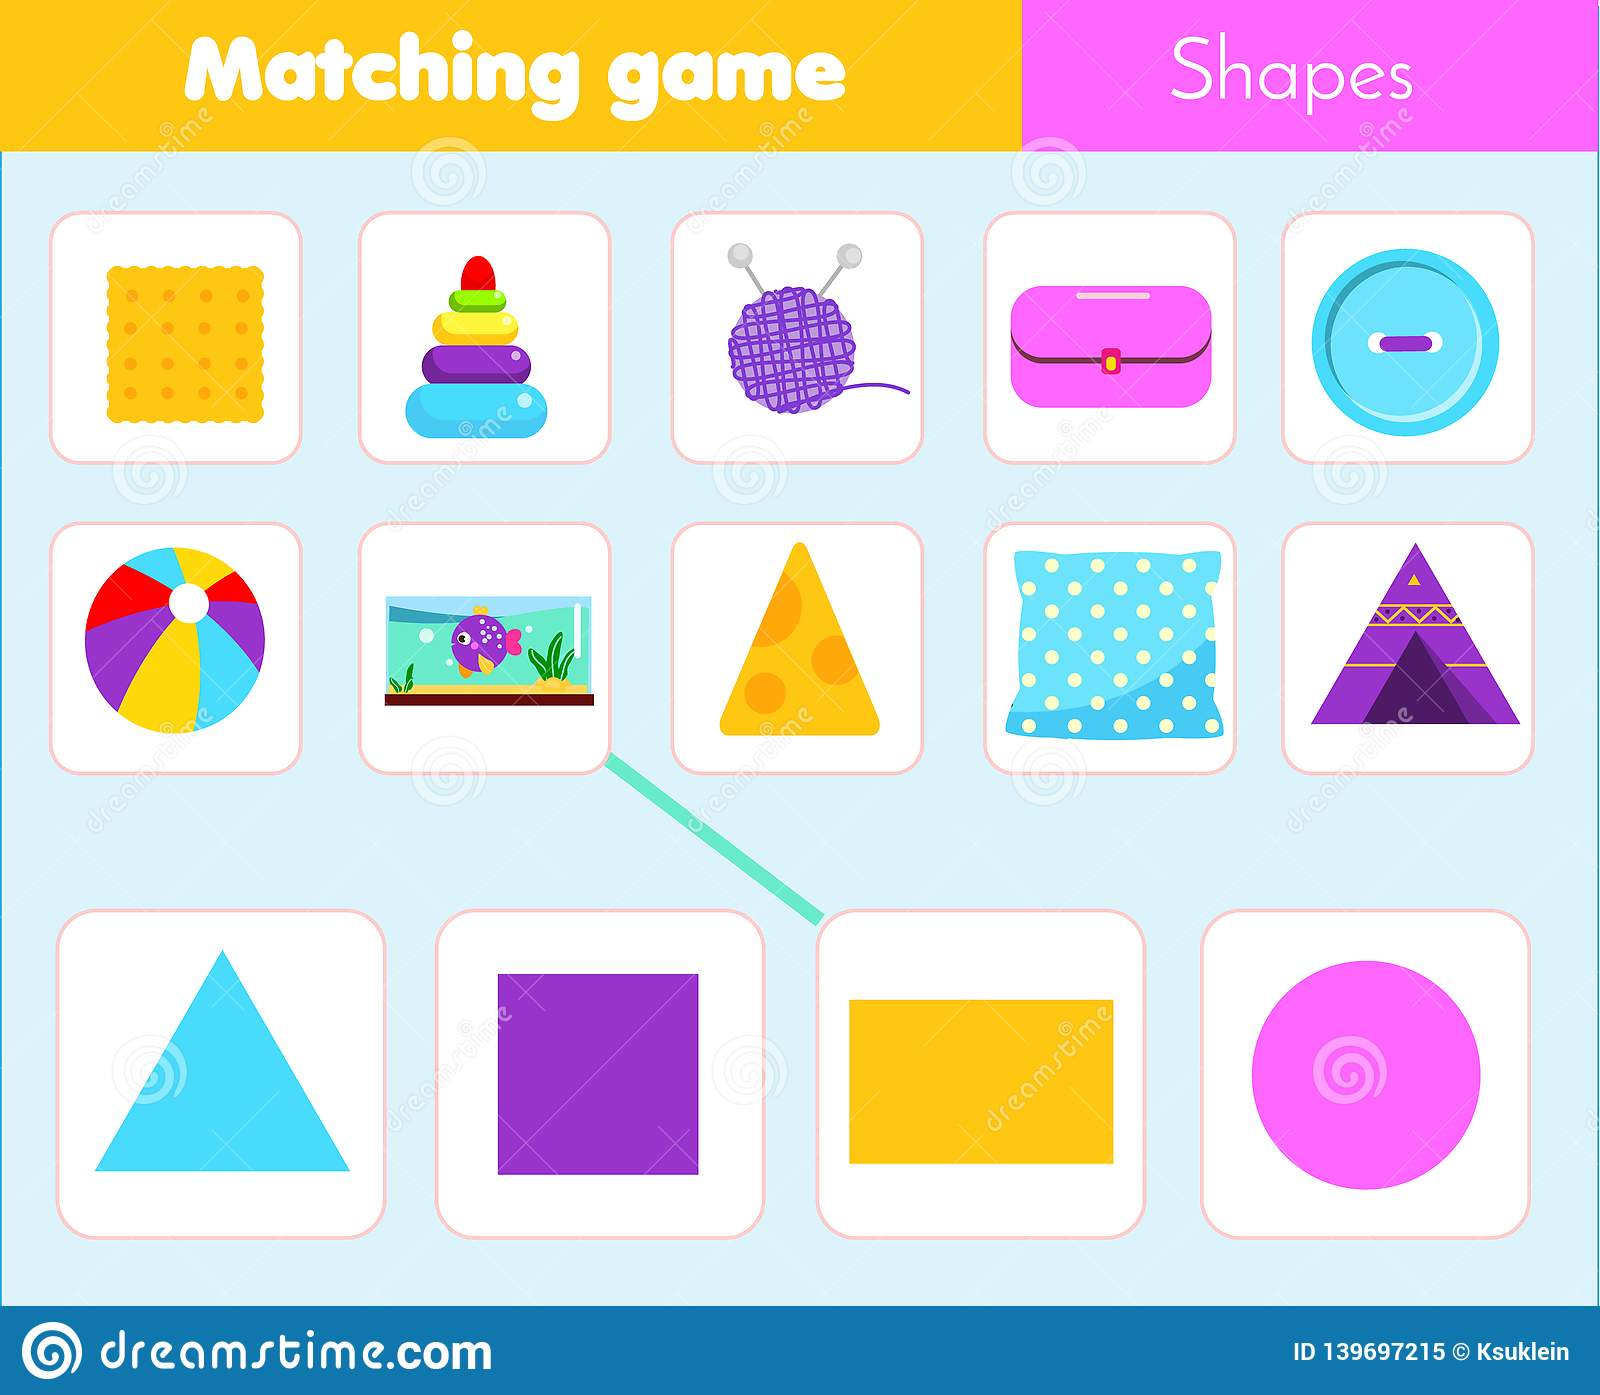 Kindergarten And Shapes Worksheets Shapes Activity Matching Objects besides  besides Educational Children Game  Matching Game Worksheet For Kids  Match further LKG Math Worksheets   Page 2 as well Match The Shapes Sorting Categorizing Worksheets Pre Matching furthermore Shapes Worksheets and Flashcards   guruparents likewise Matching Shapes Worksheets This Worksheet Will Allow Kids To further Cut And Paste Shapes Worksheets You Can Use To Teach Your Ea as well Curved Line Tracing  Match the Shapes and Objects   Worksheet as well Kindergarten And Shapes Worksheets Matching Objects Similar Best For furthermore  as well Printable Worksheets Matching For Kids Number To Objects Picture The likewise  as well Shapes Worksheets   Planning Playtime additionally Match each Object with the Right Shape   lernin worksheets furthermore 2D Shapes Worksheets   Printables   Worksheets. on matching shapes to objects worksheets